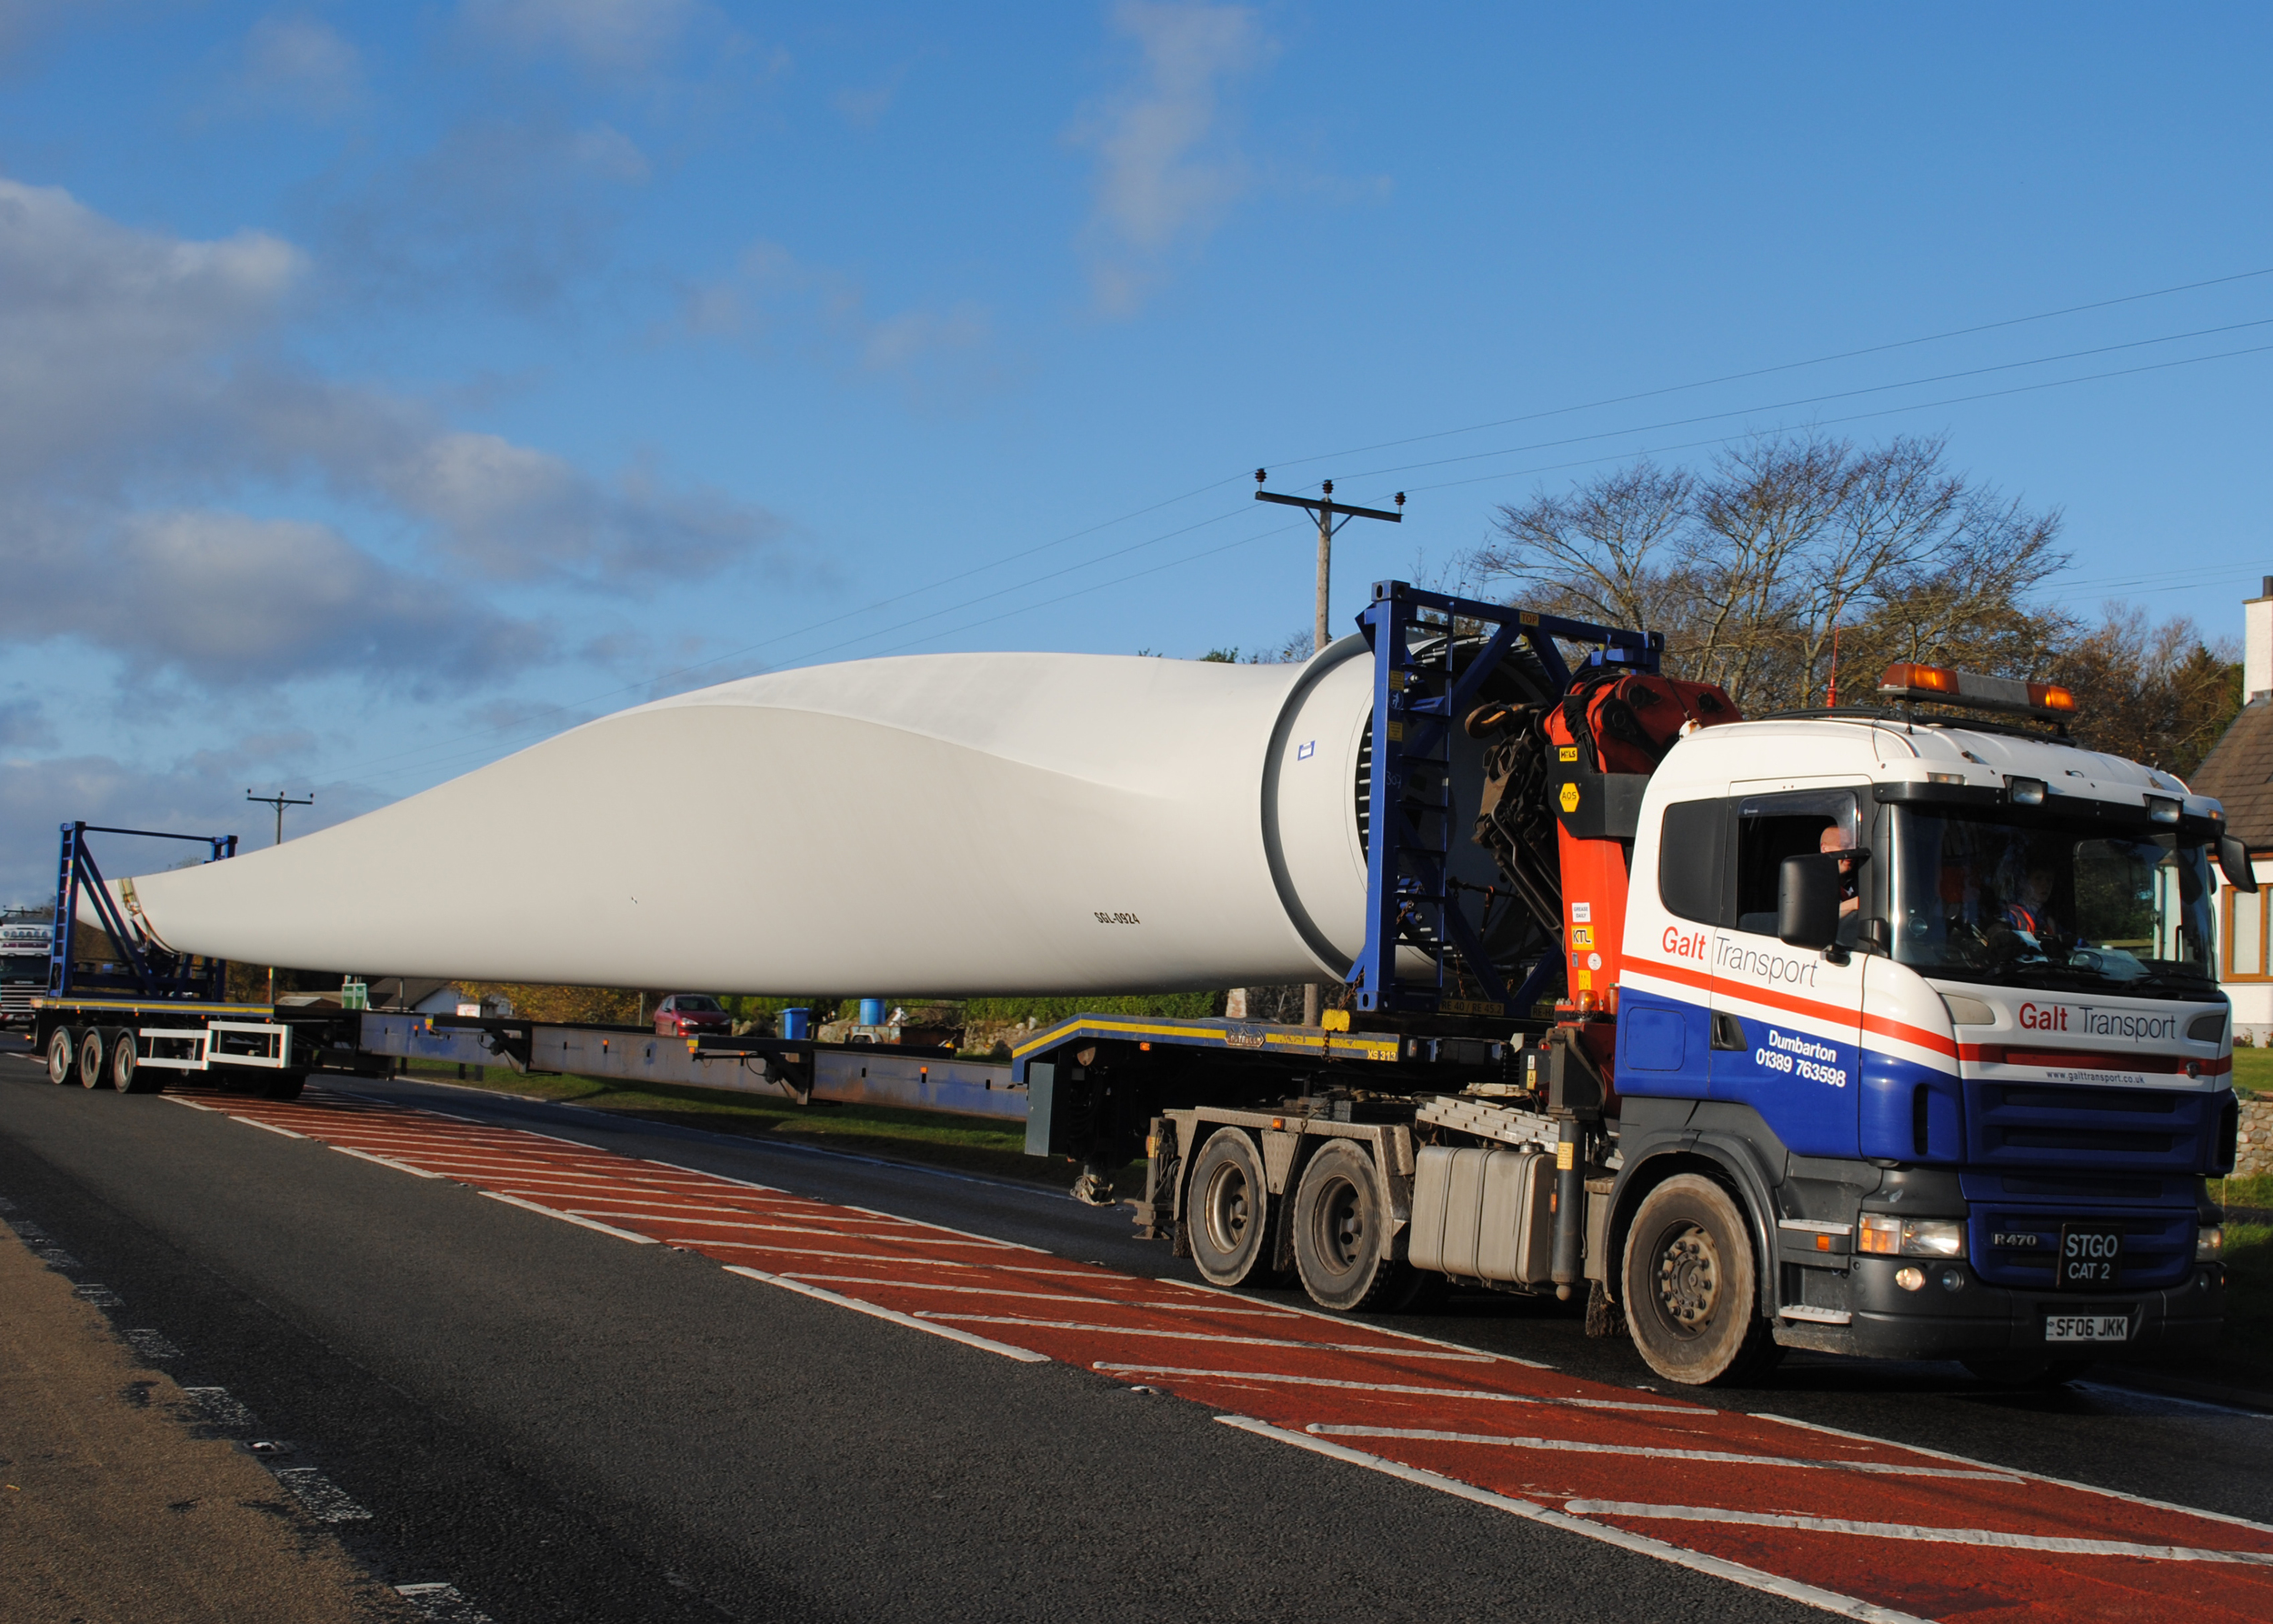 Abnormal load of wind turbine blade